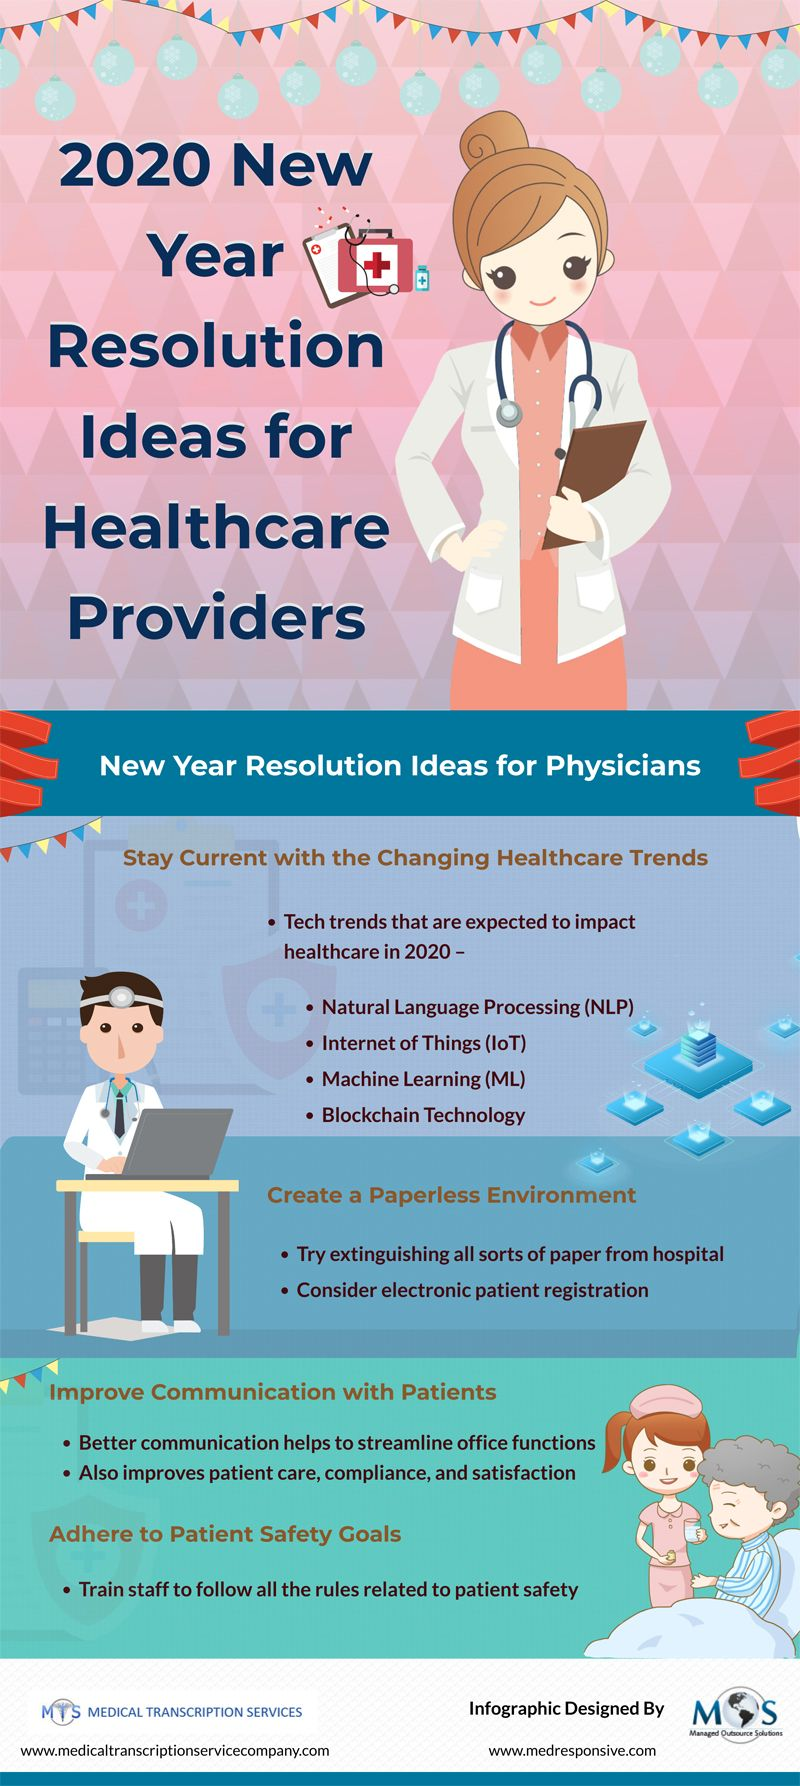 2020 New Year Resolution Ideas for Healthcare Providers